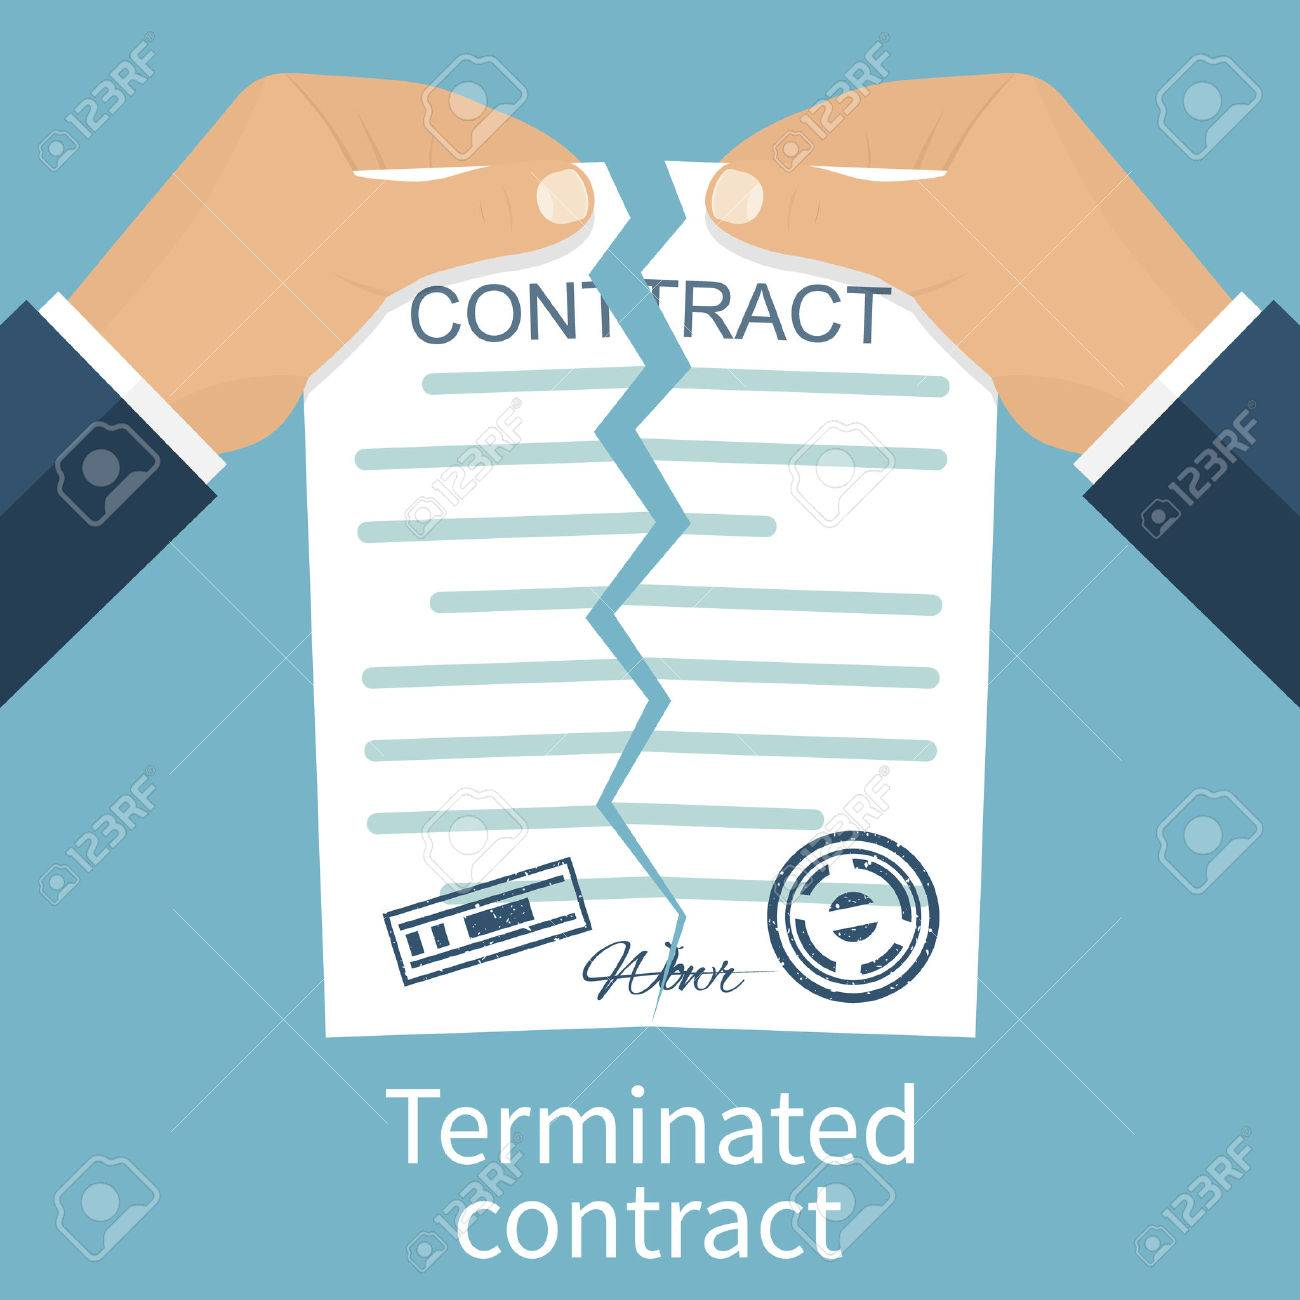 Terminated Contract. Businessman Tearing Contract Hands. Flat Design Style  Vector Illustration. Concept Of